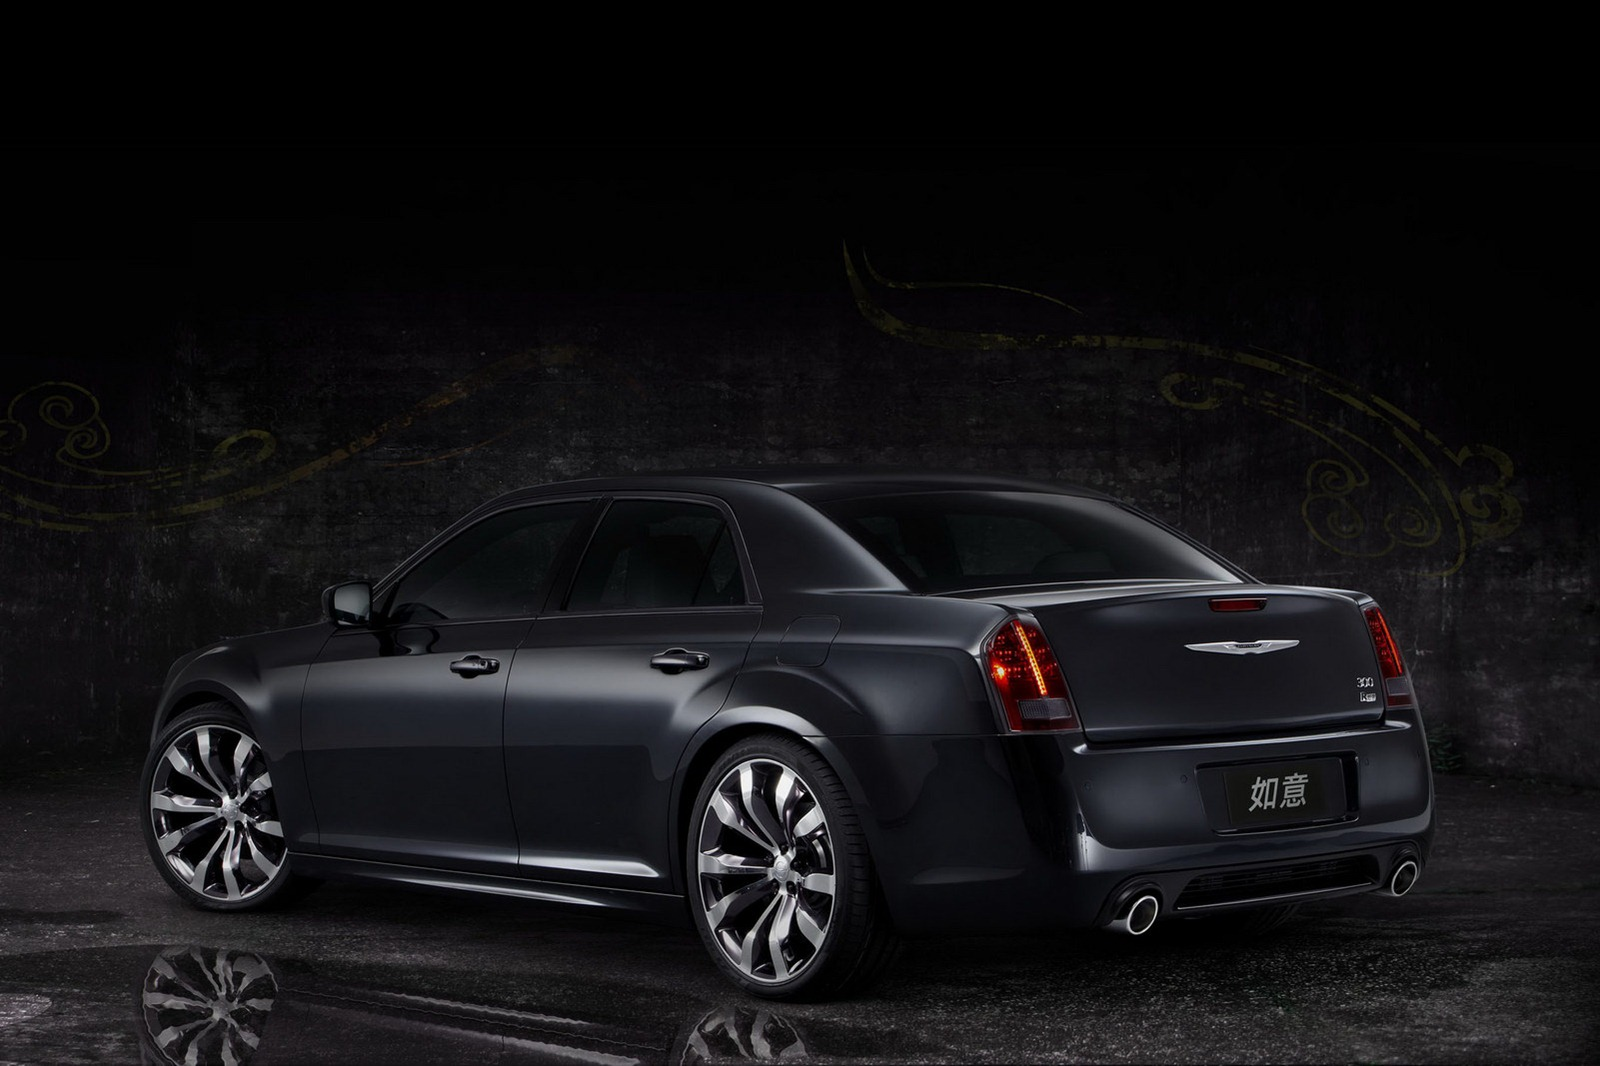 2016 Chrysler 300 Concept - Viewing Gallery